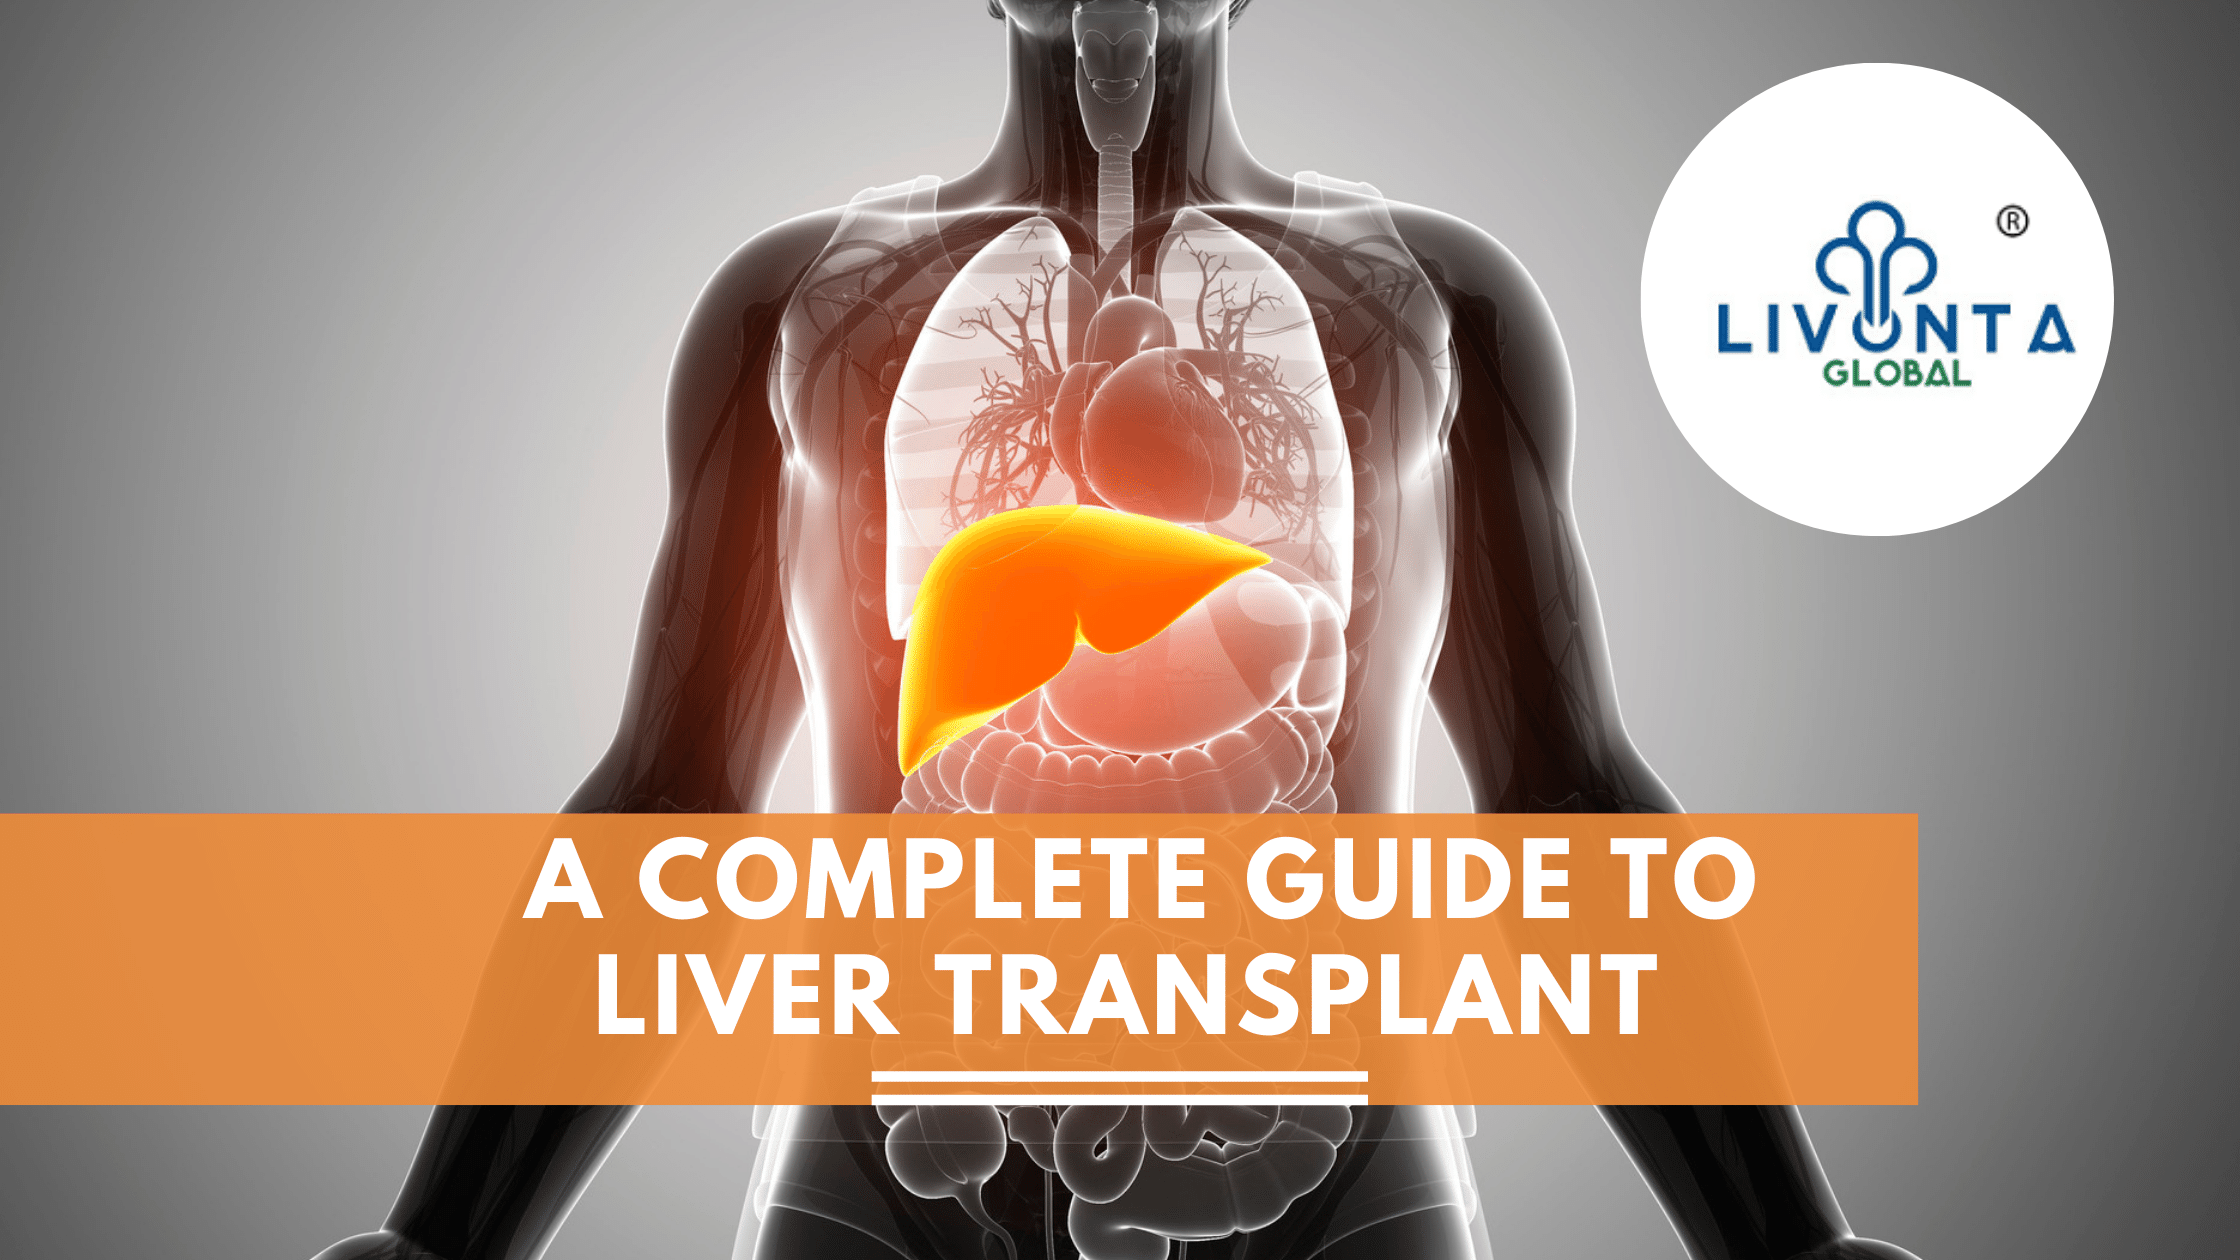 A Complete Guide To Liver Transplant